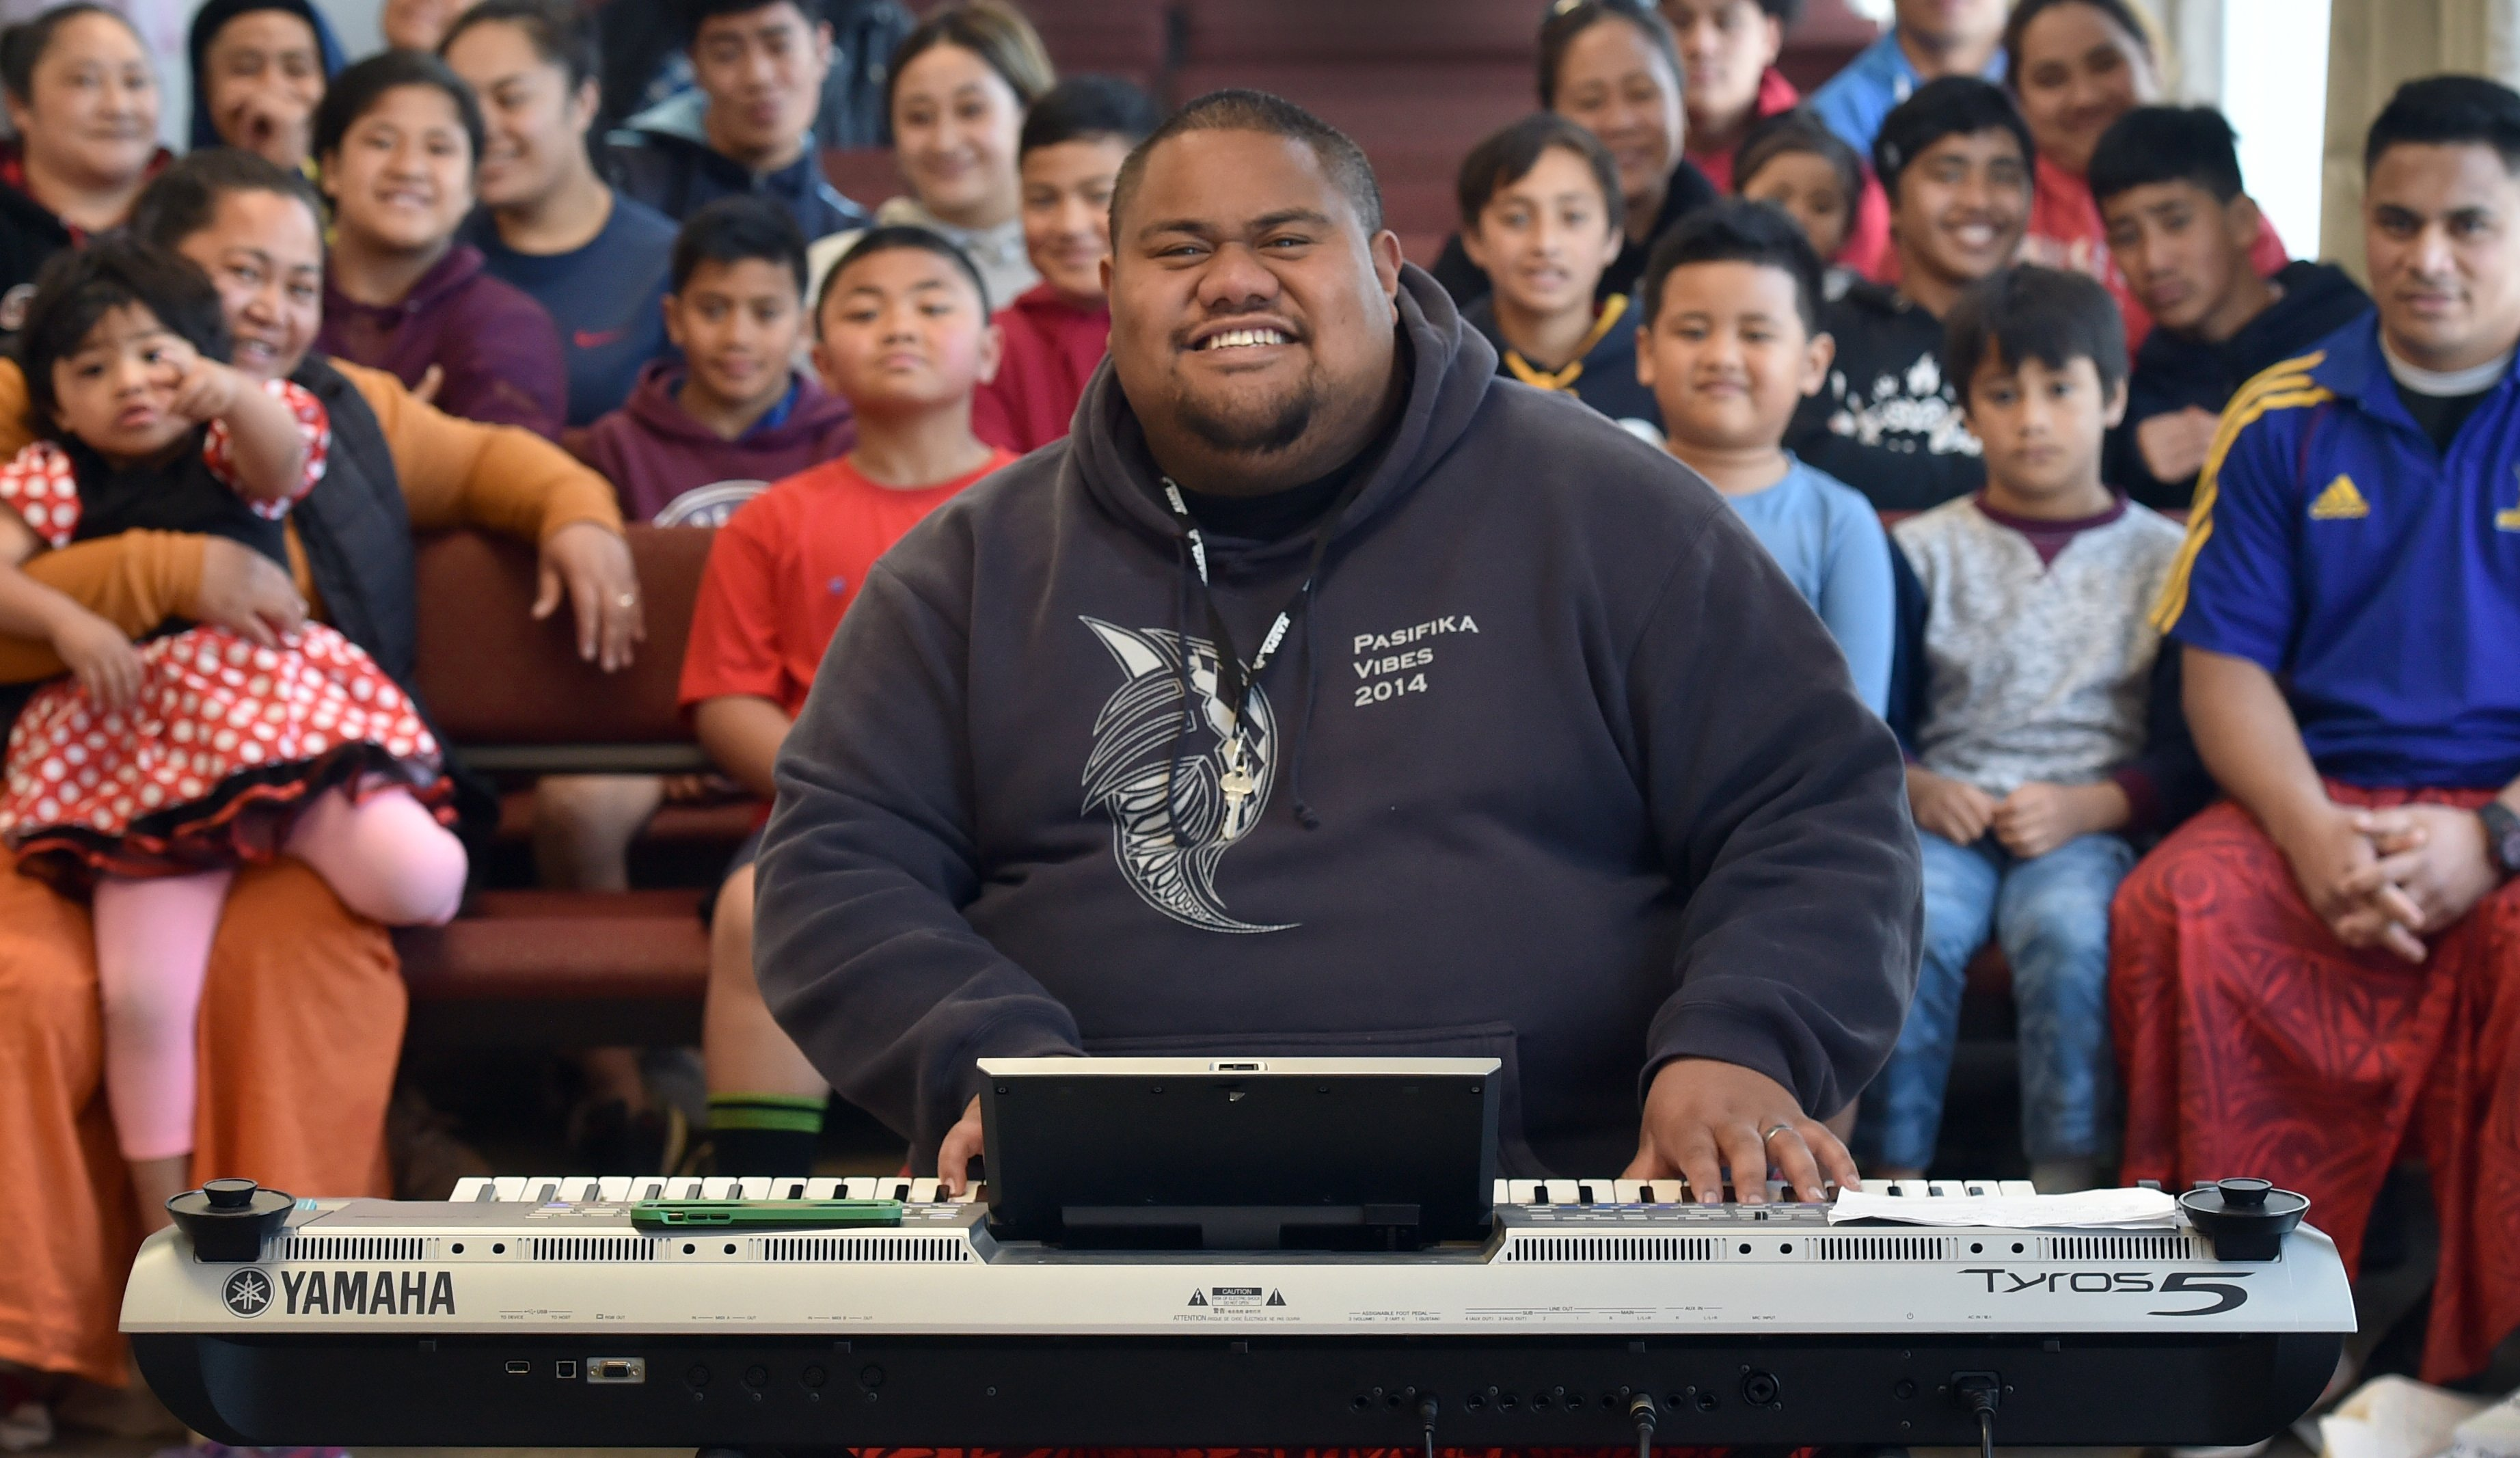 Gospel singer Lani Alo at the Congregational SamoanChurch, EFKS Dunedin, in Macandrew Rd, yesterday. PHOTO: PETER MCINTOSH